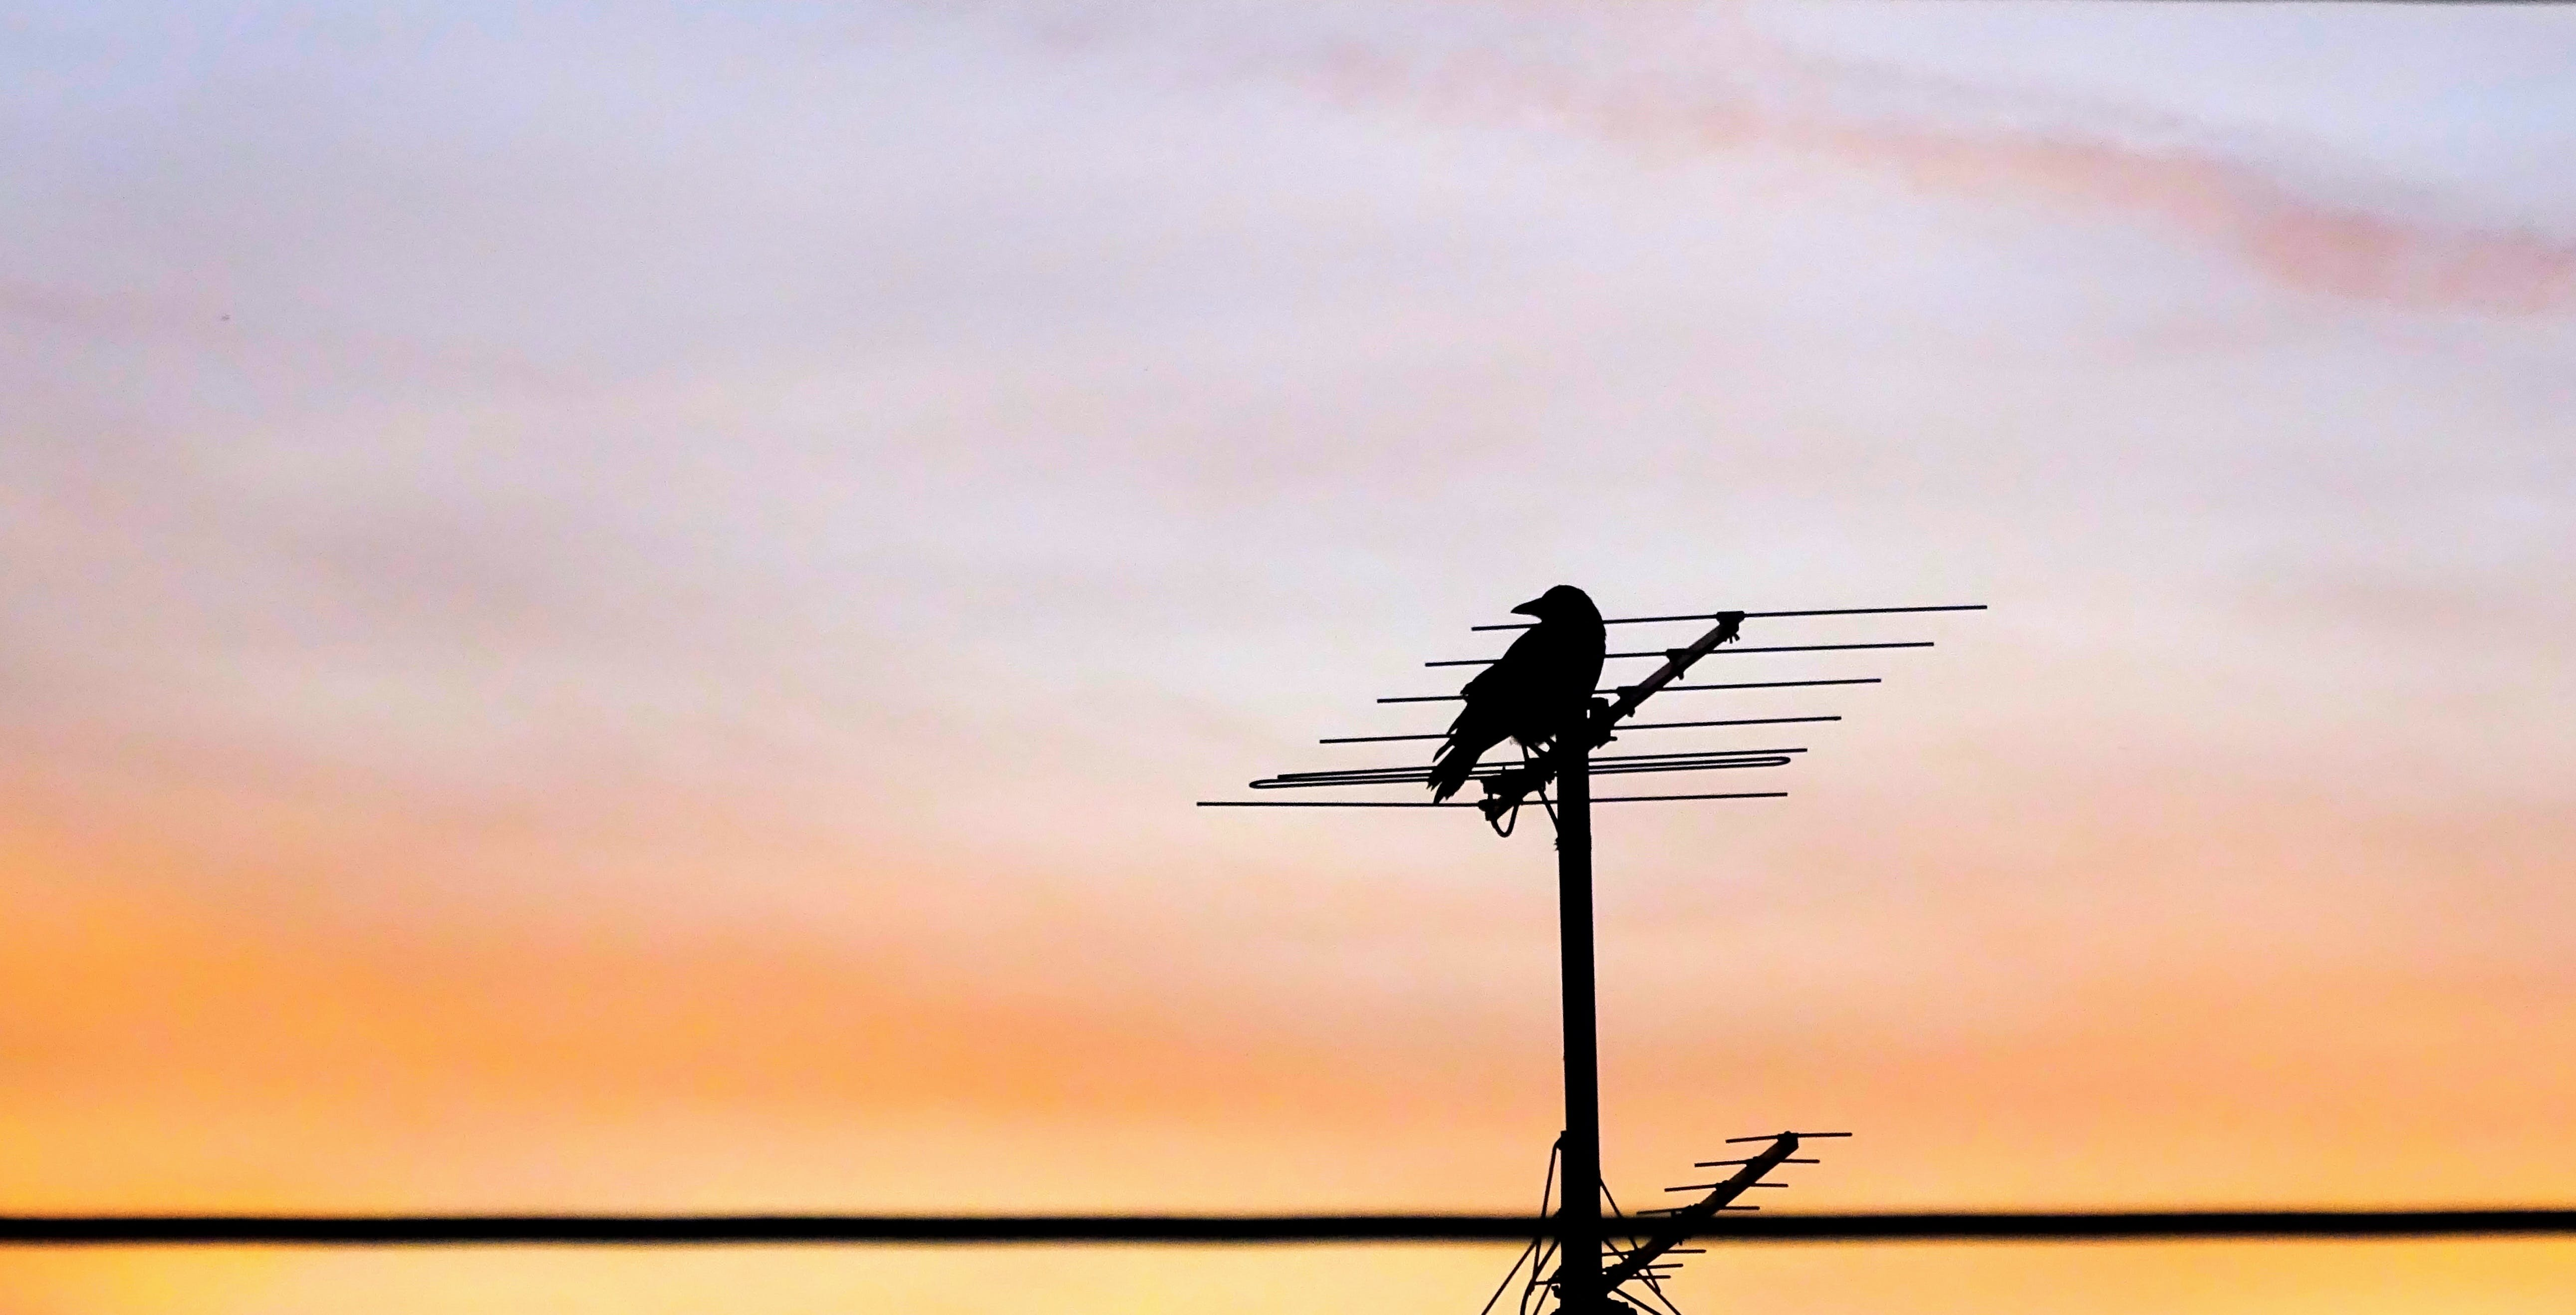 Crow on Antenna during Sunset